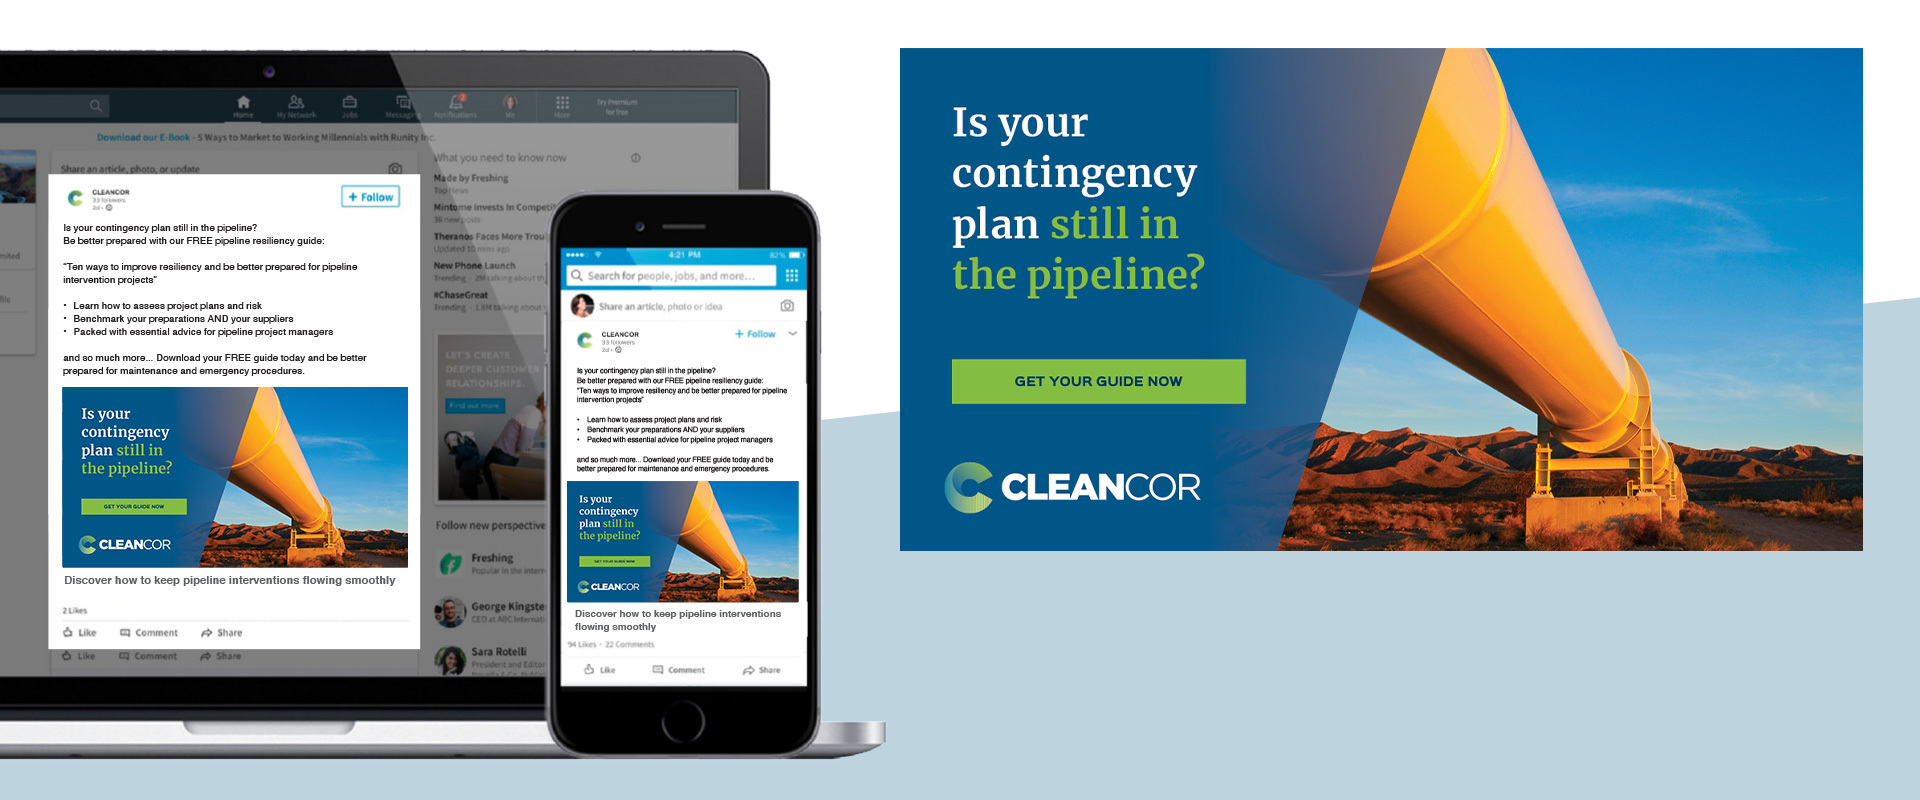 CLEANCOR Pipeline Resiliency